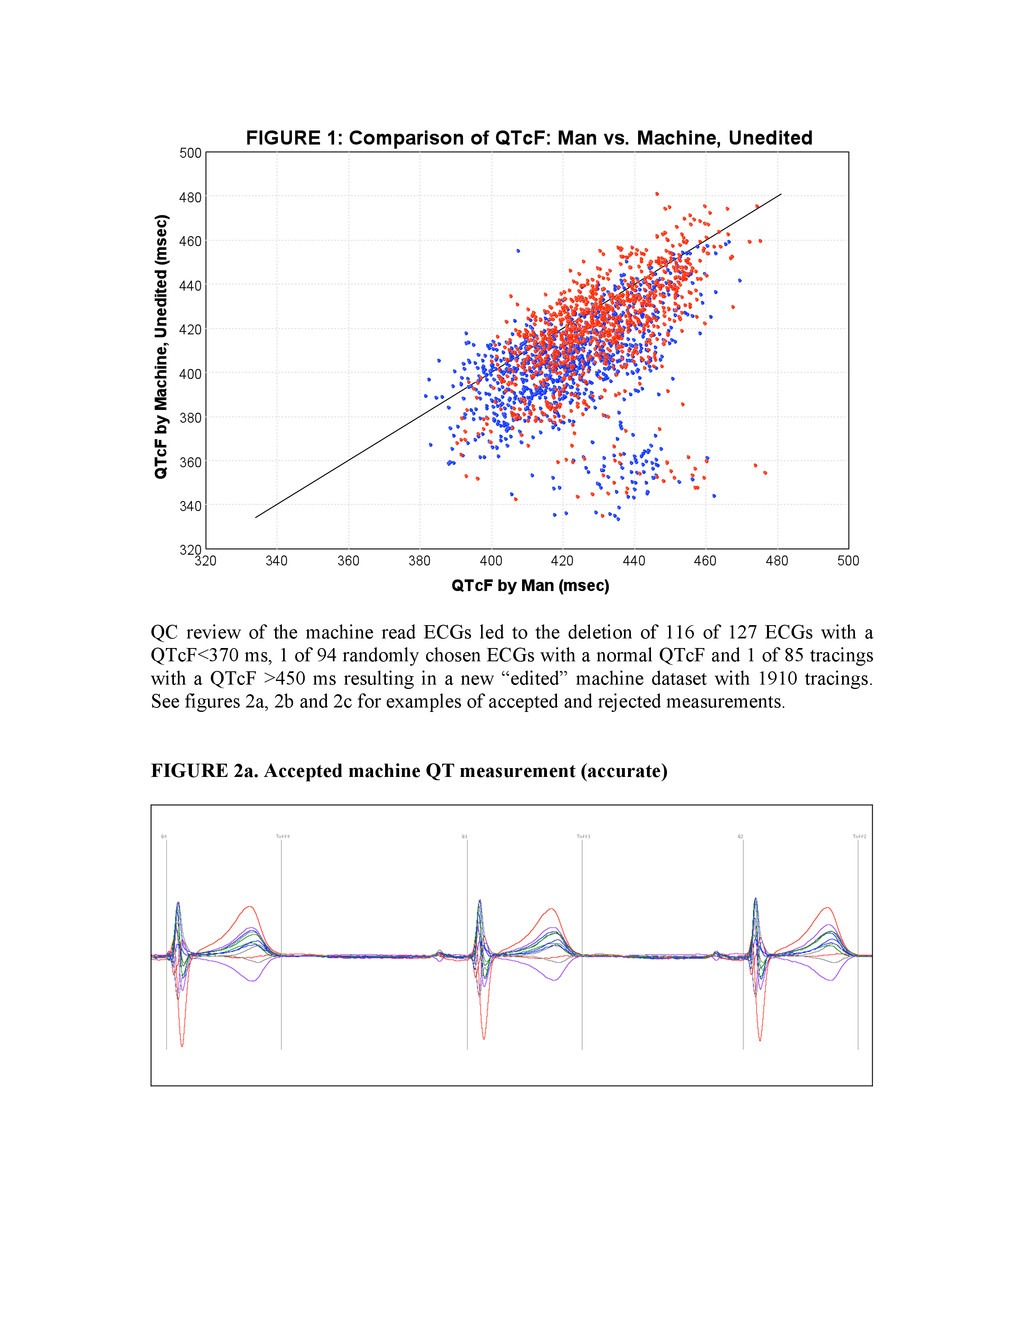 QC review of the machine read ECGs led to the d...